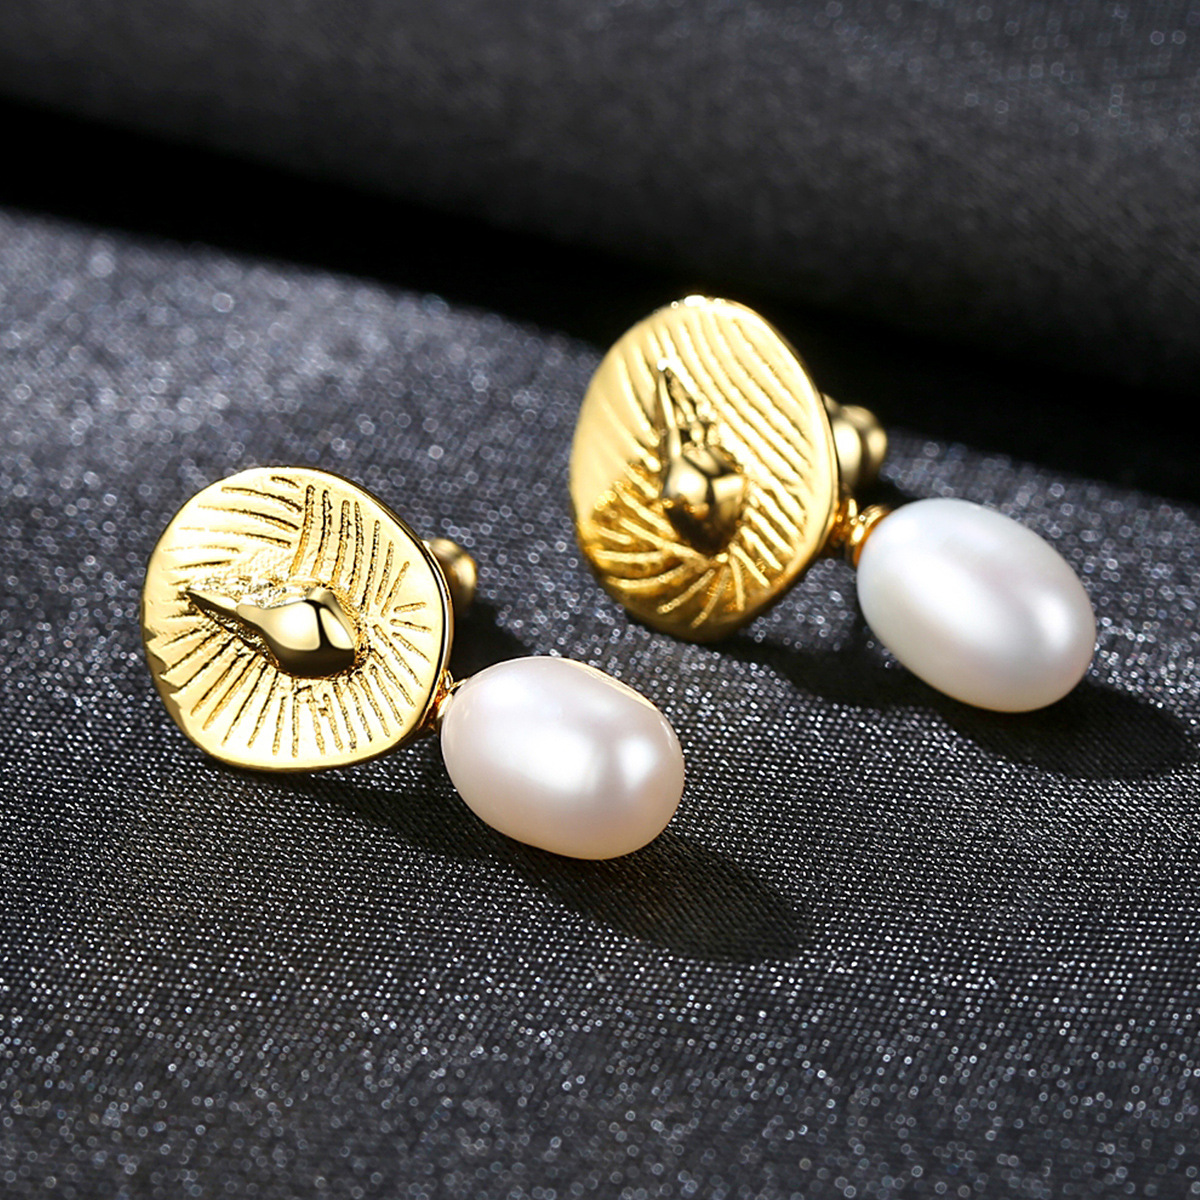 YUEYIN 925 Sterling Silver Earrings18K Gold Plated Nature Pearl Fine Jewelry Korean Earrings High Quality Fashion Style 2019 in Earrings from Jewelry Accessories